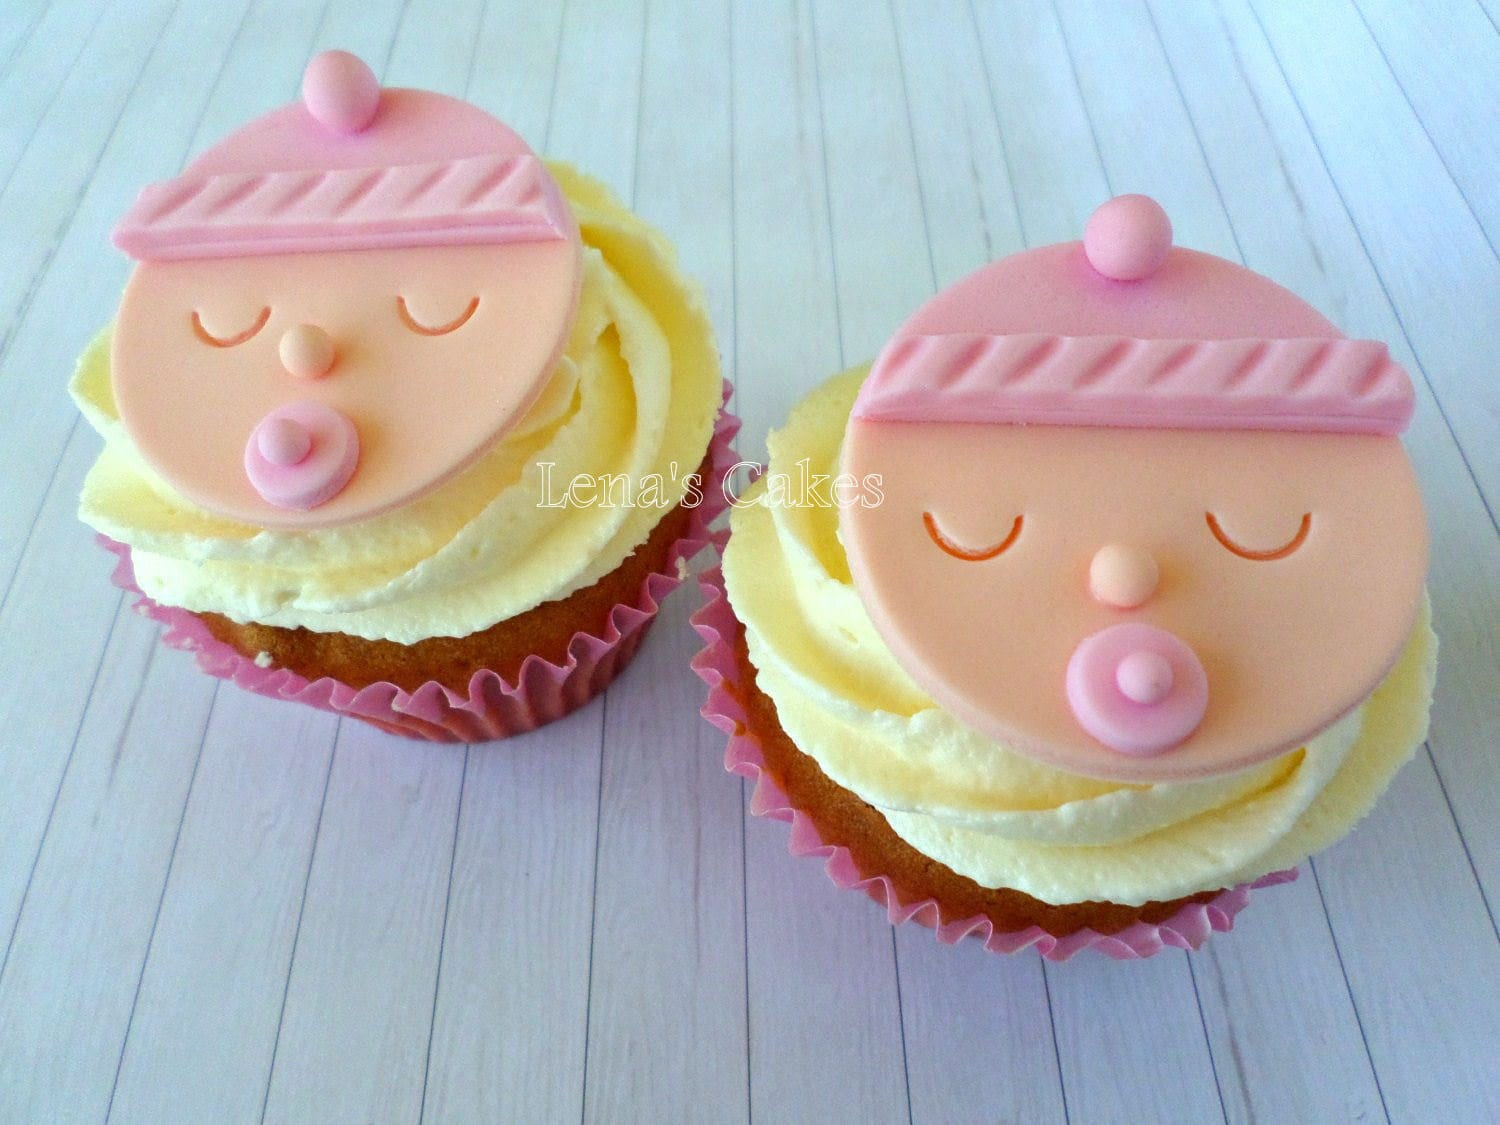 Edible cupcake decorations baby shower -  Zoom